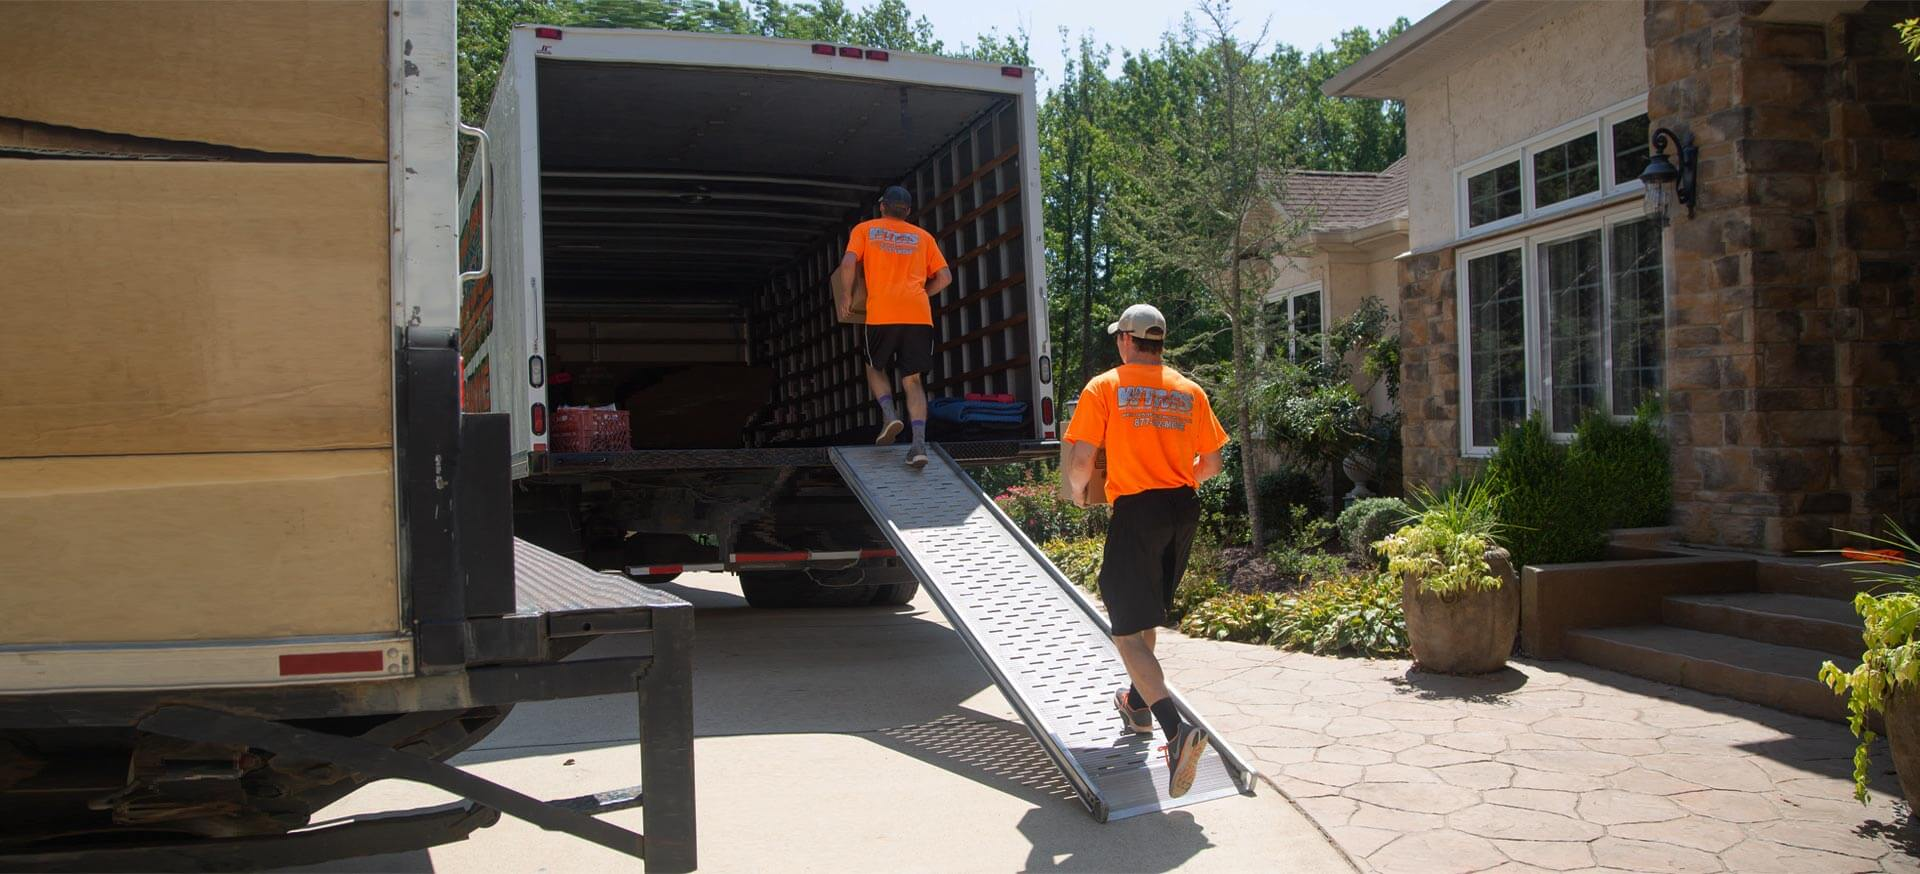 West Tennessee Movers - Family Moving